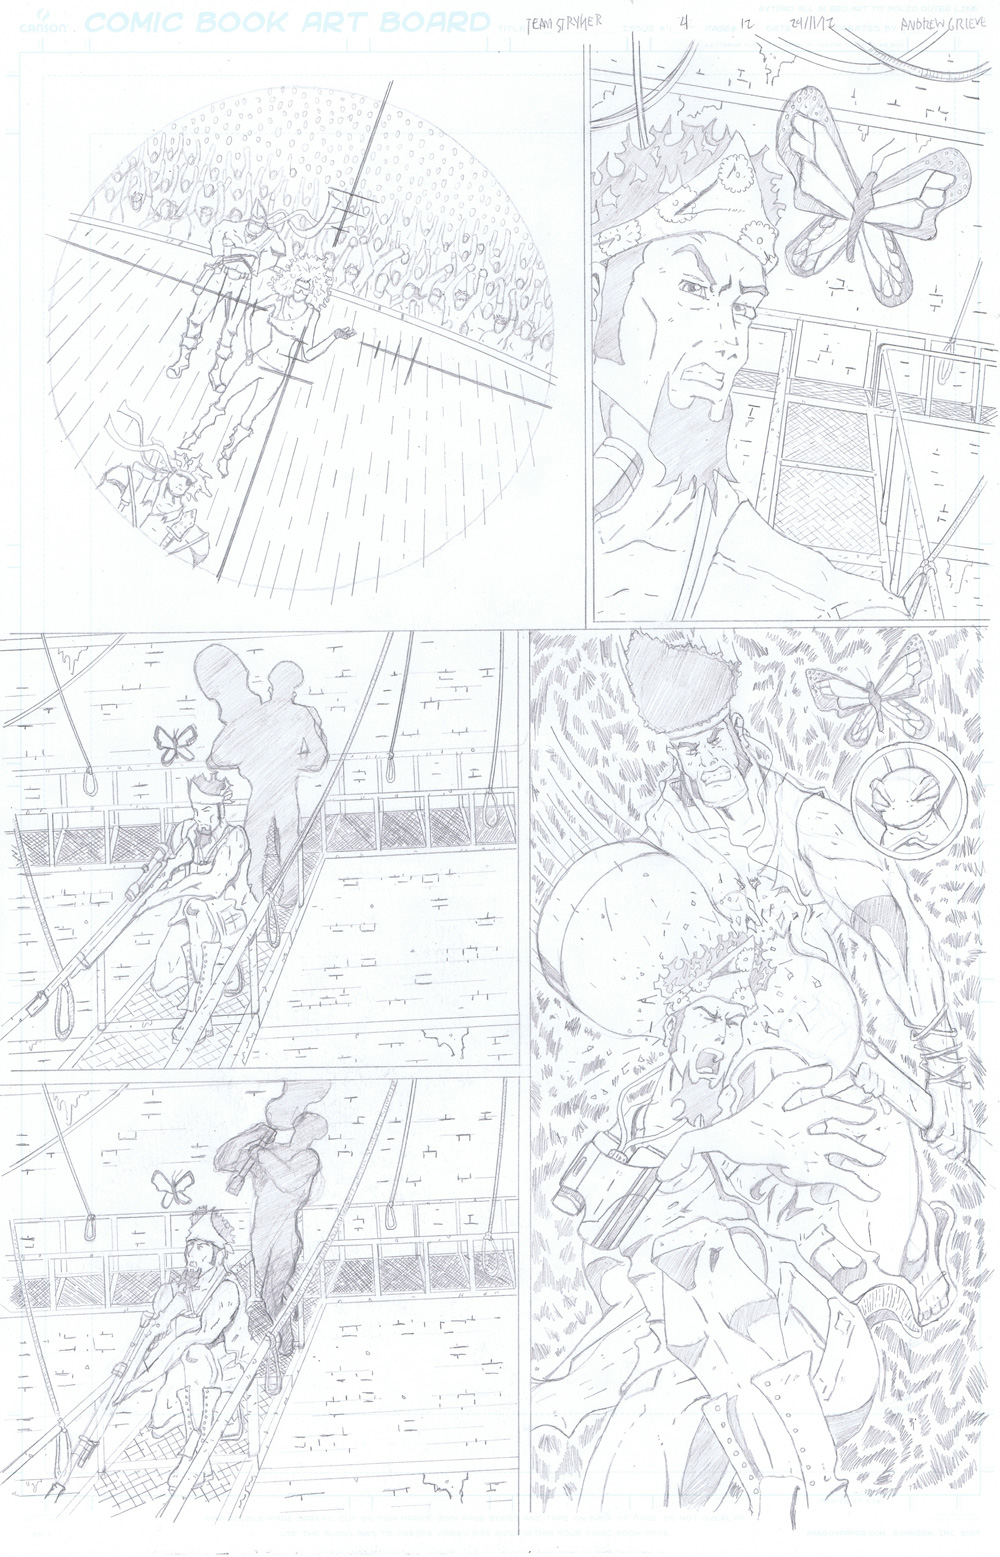 MISSION 004: PAGE 12 PENCIL